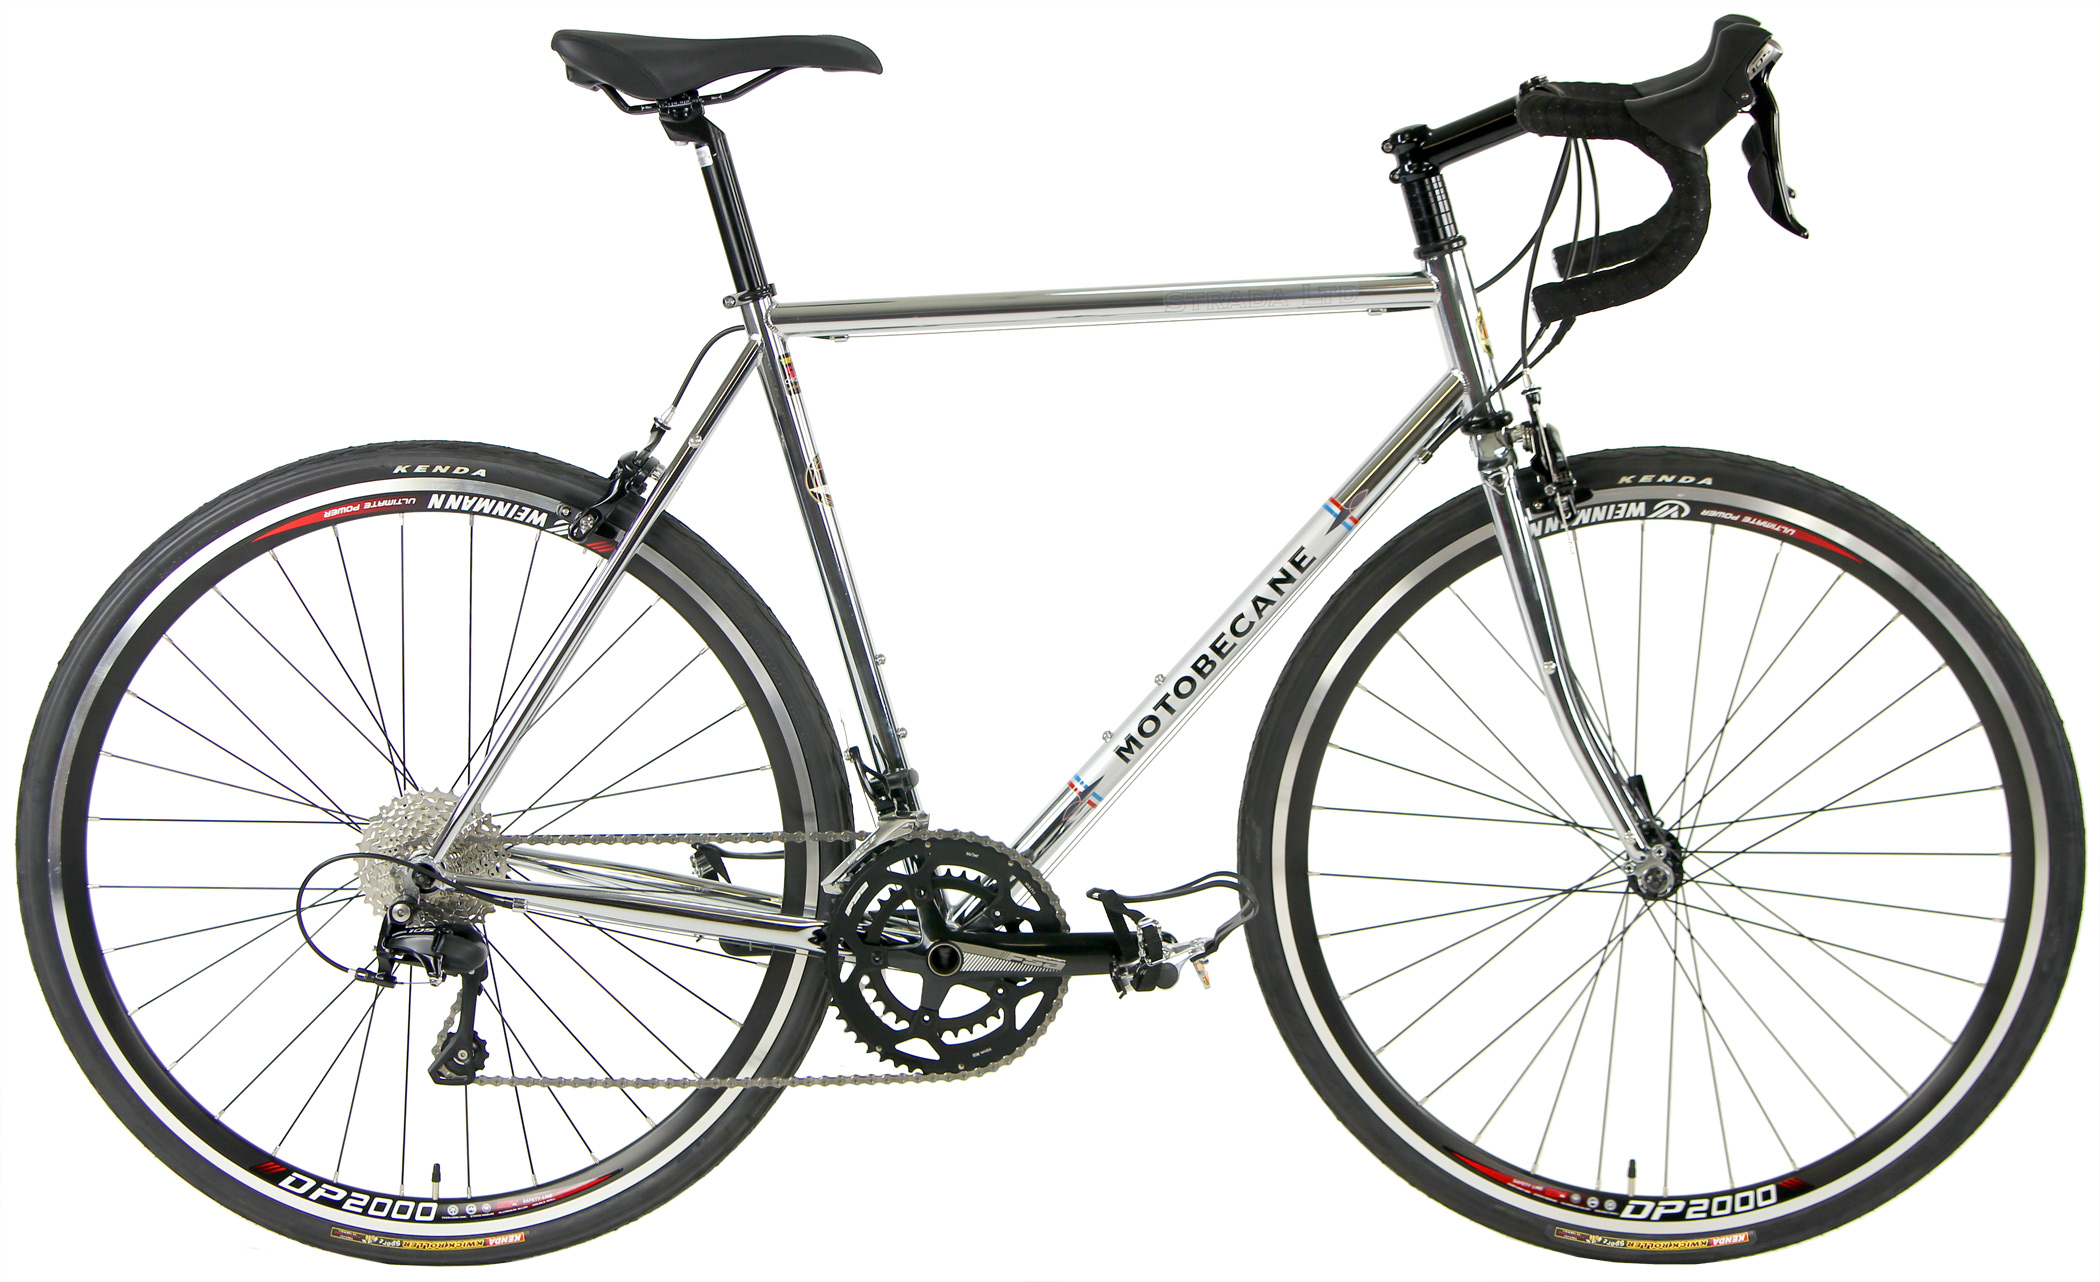 STRADA ltd. 2.0 CHROME     - CHROMOLY ROAD BIKE 2x11